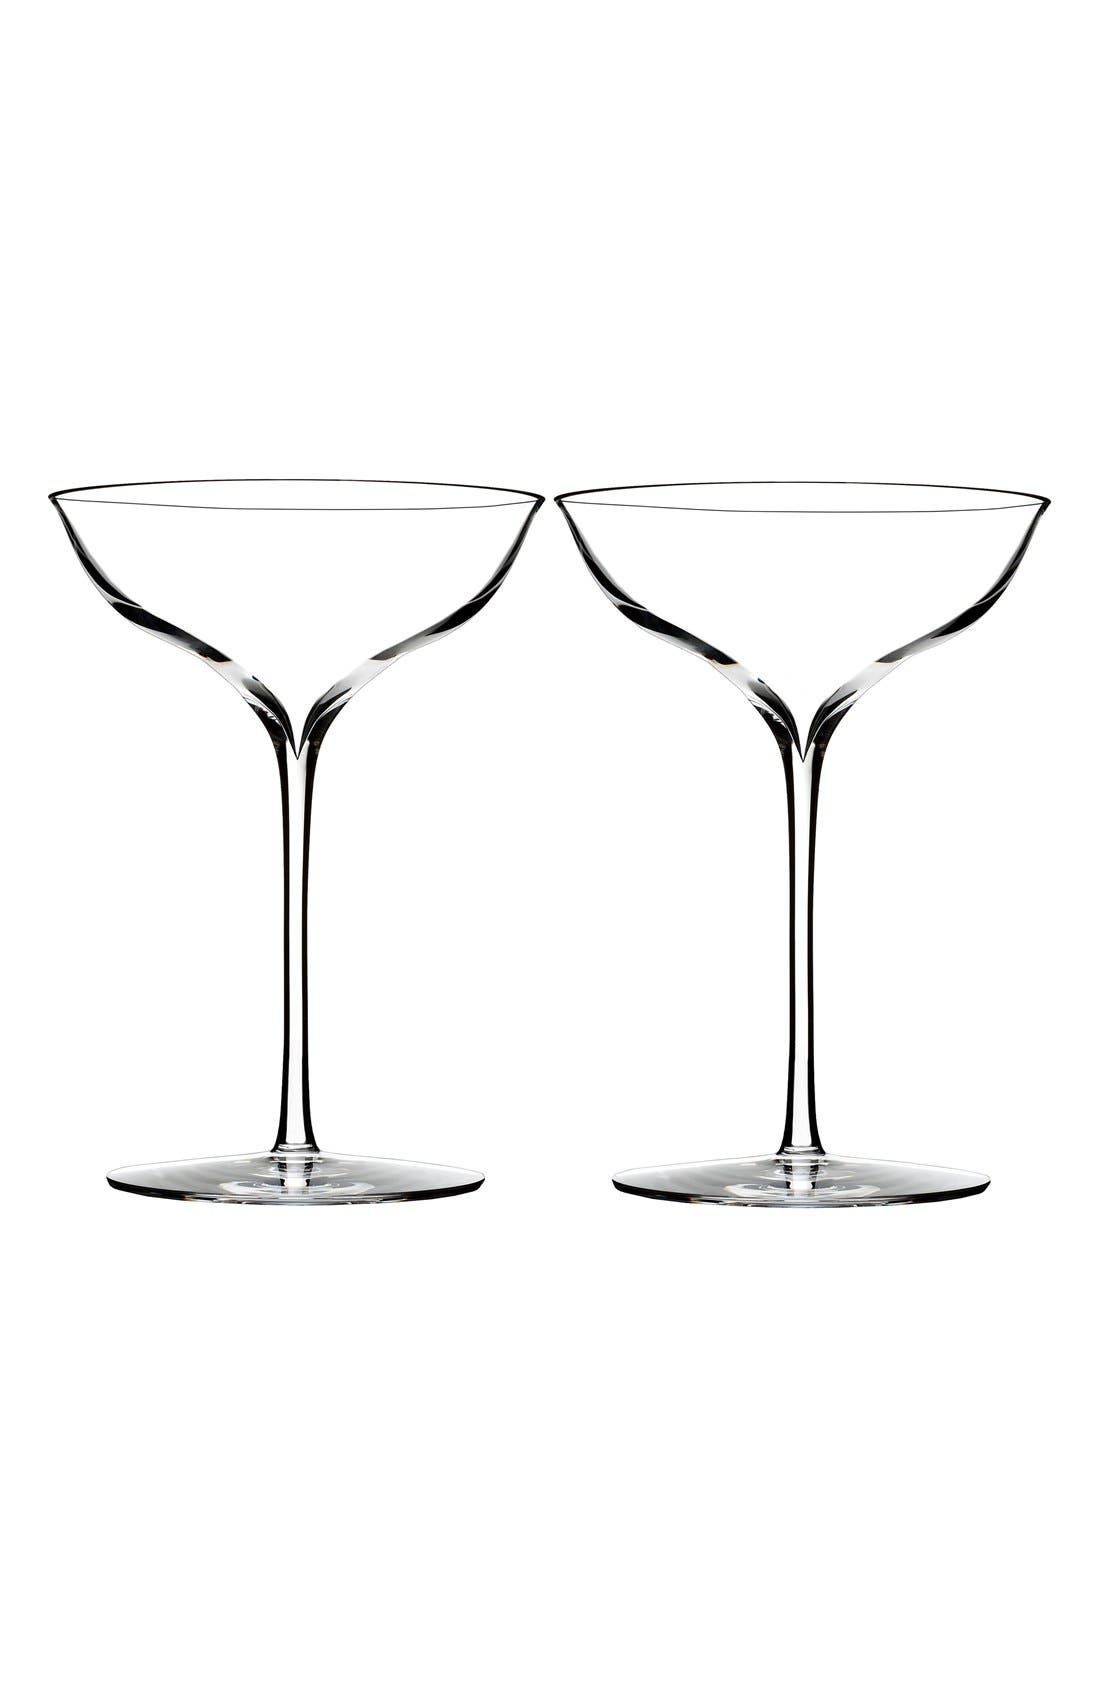 Waterford 'Elegance' Fine Crystal Champagne Coupe Toasting Glasses (Set of 2)